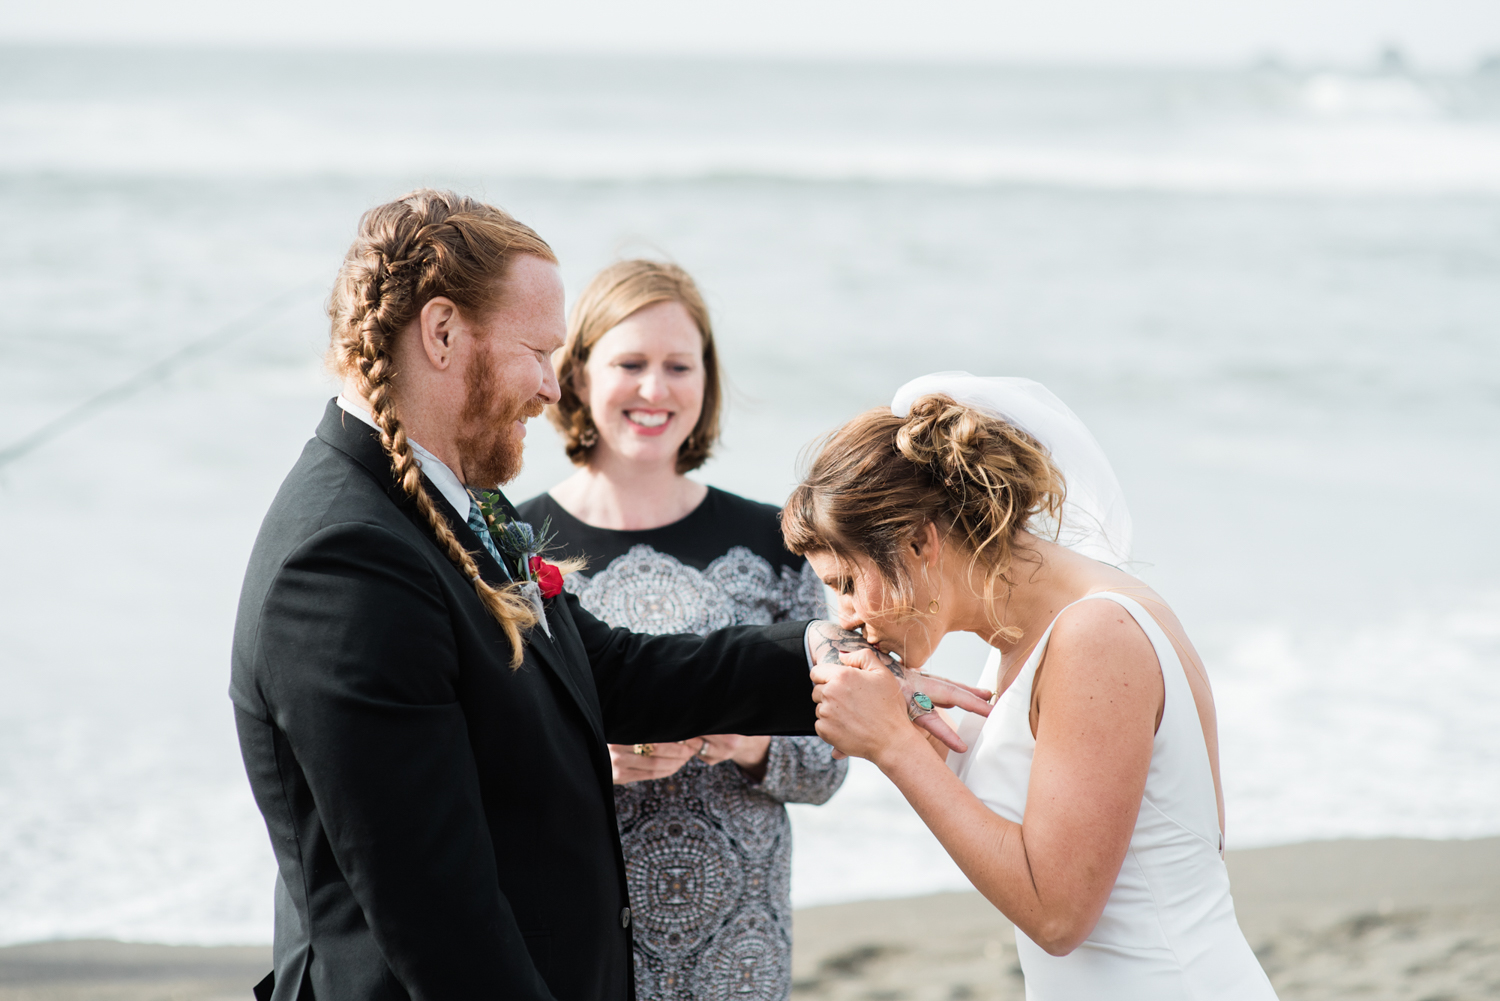 Pacifica_Beach_Surfer_Wedding_109.jpg